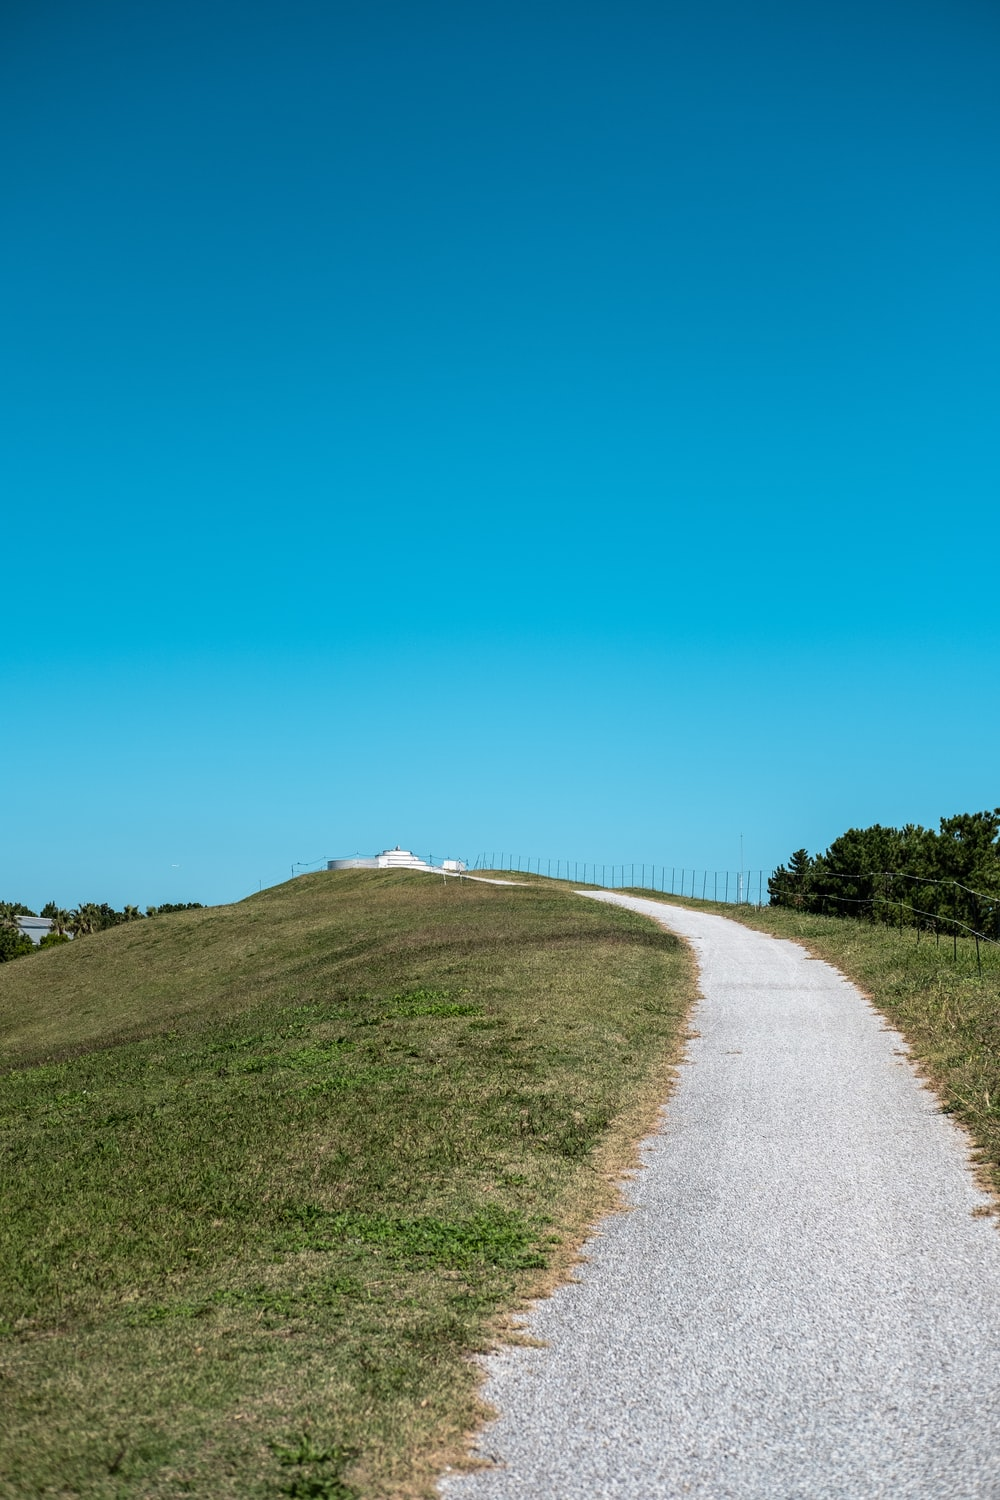 gray road between green grass field under blue sky during daytime